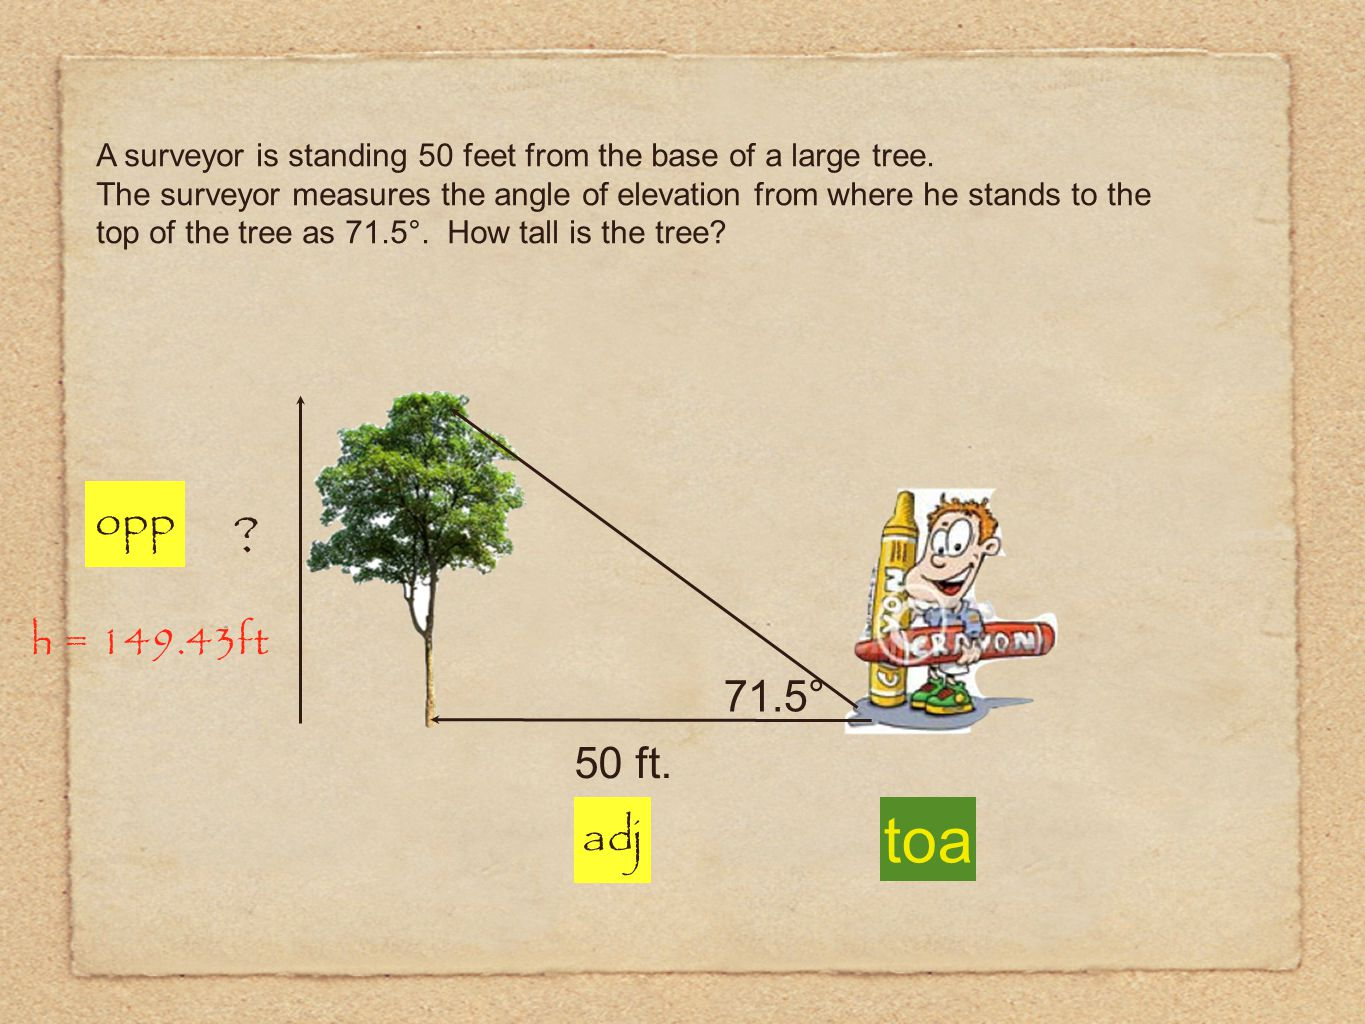 A surveyor is standing 50 feet from the base of a large tree. The surveyor measures the angle of elevation from where he stands to the top of the tree